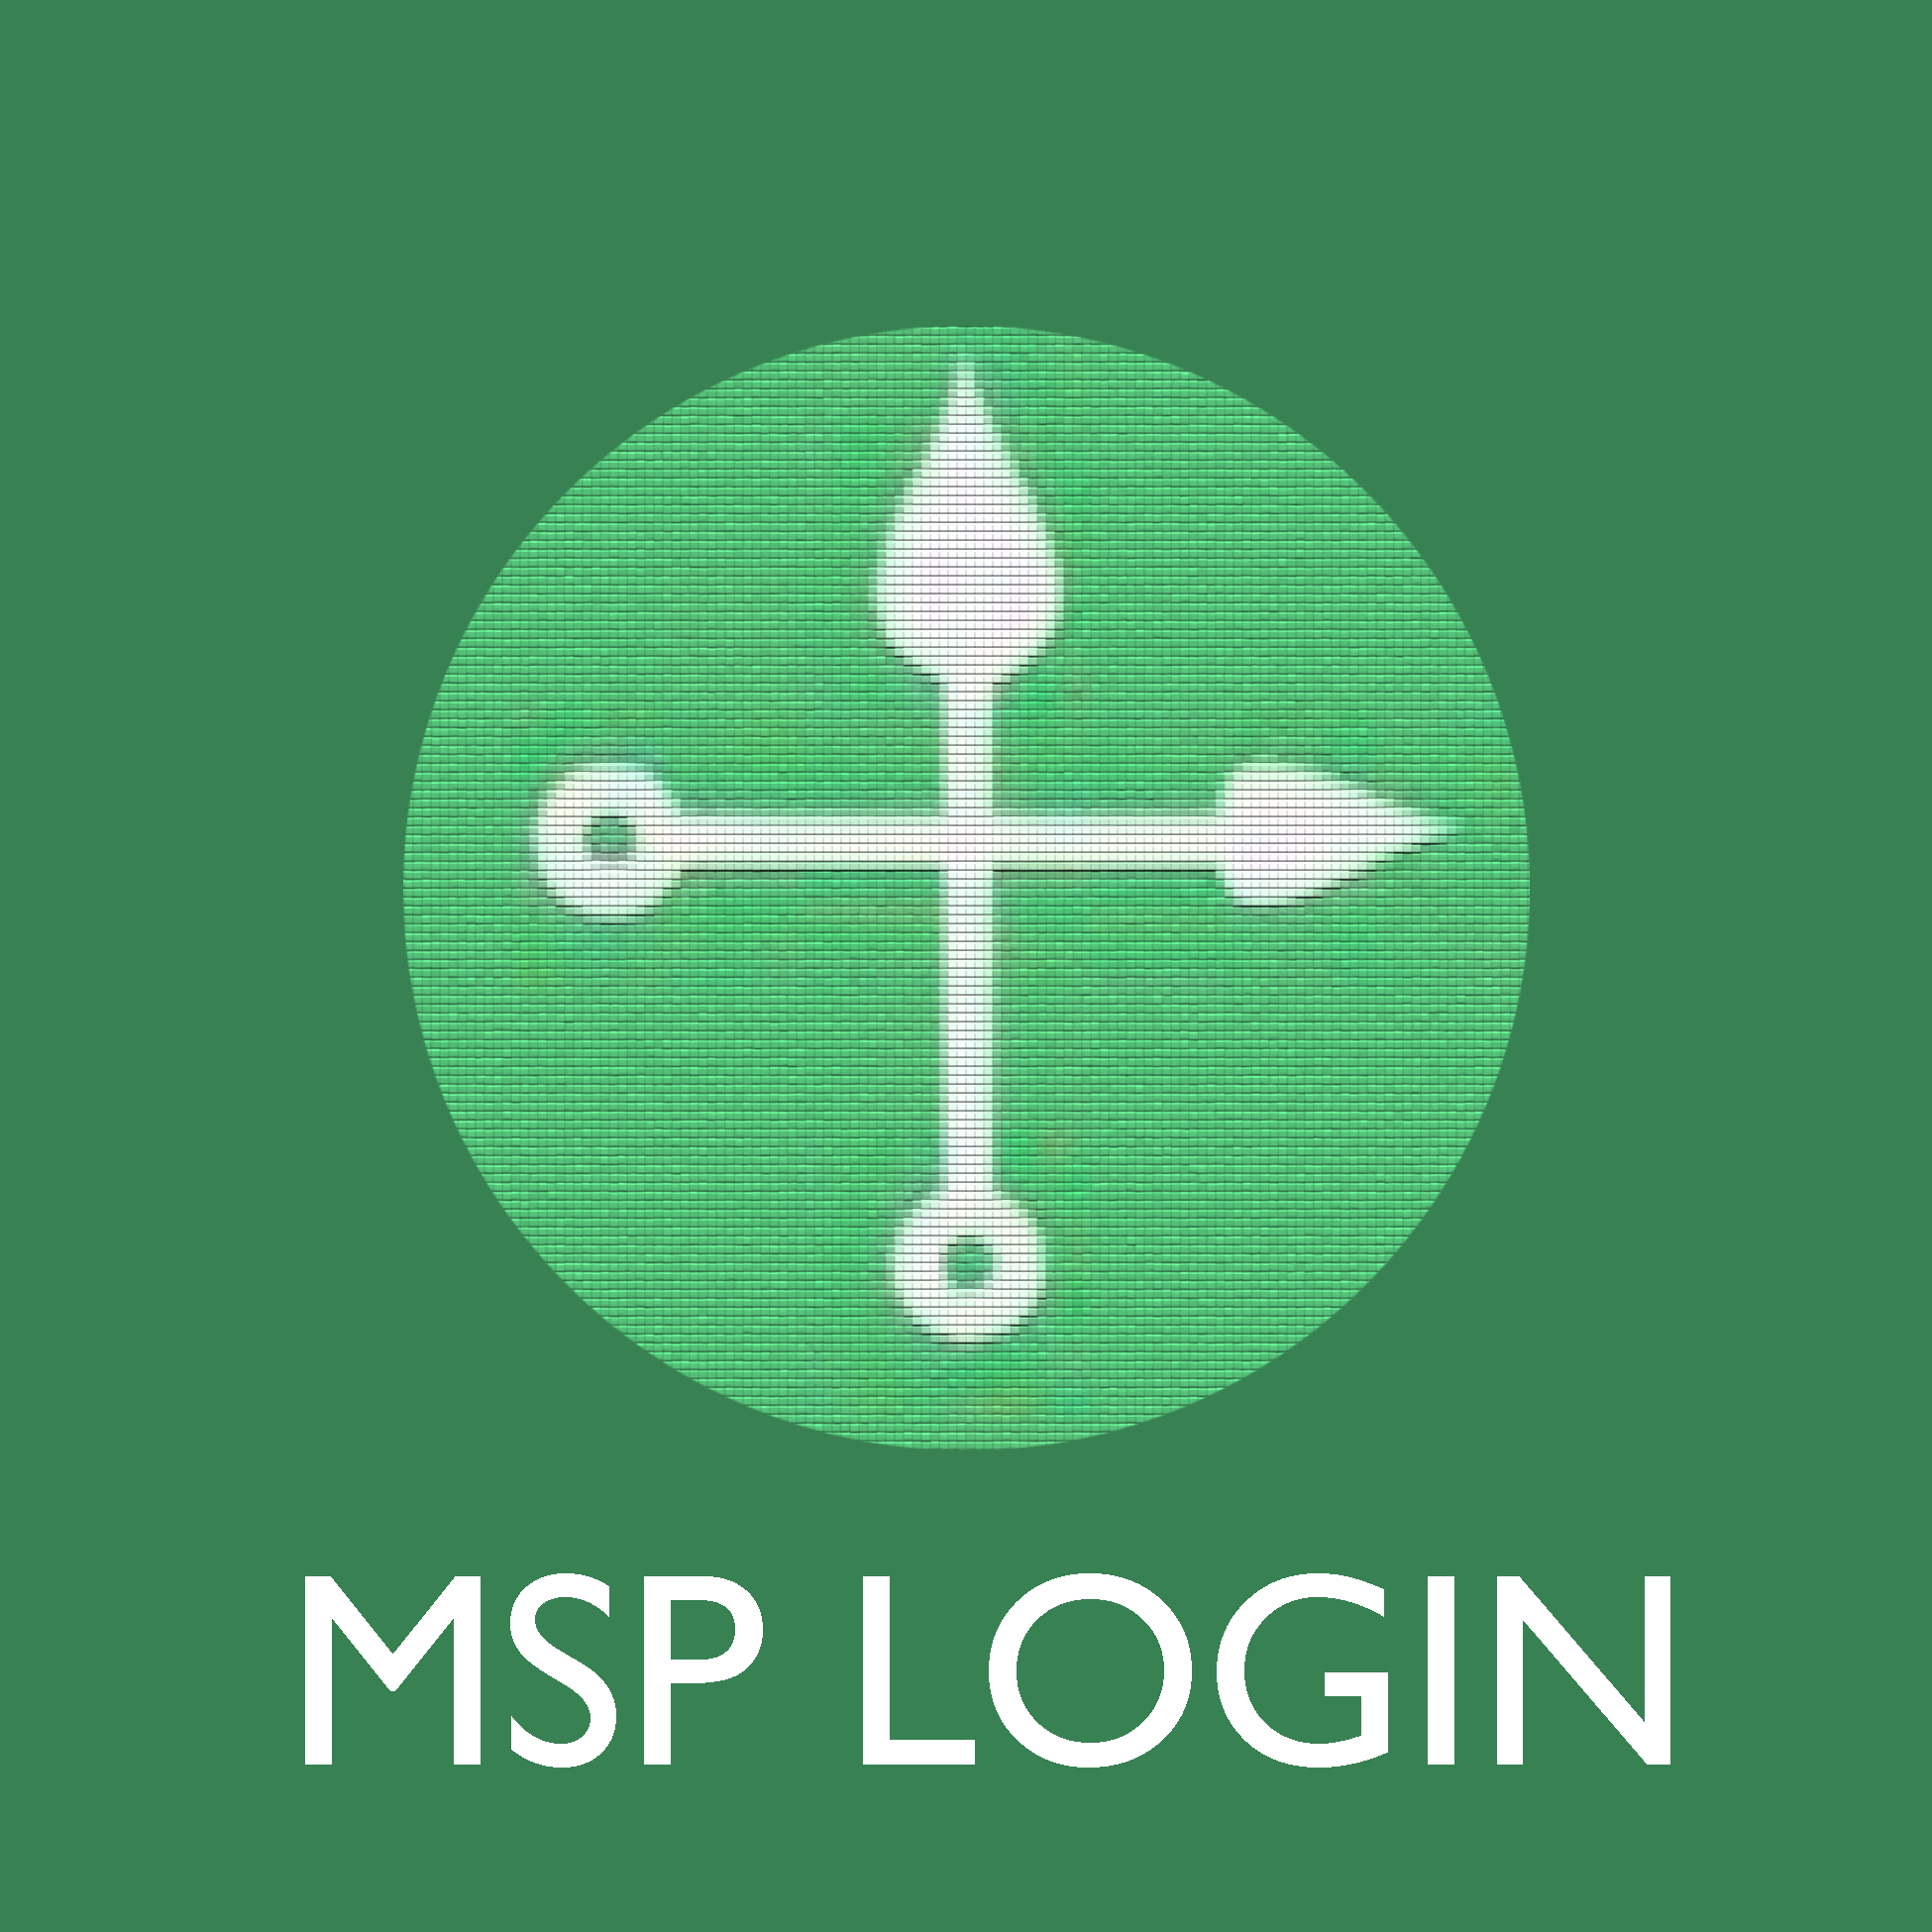 MSP Login Square.png